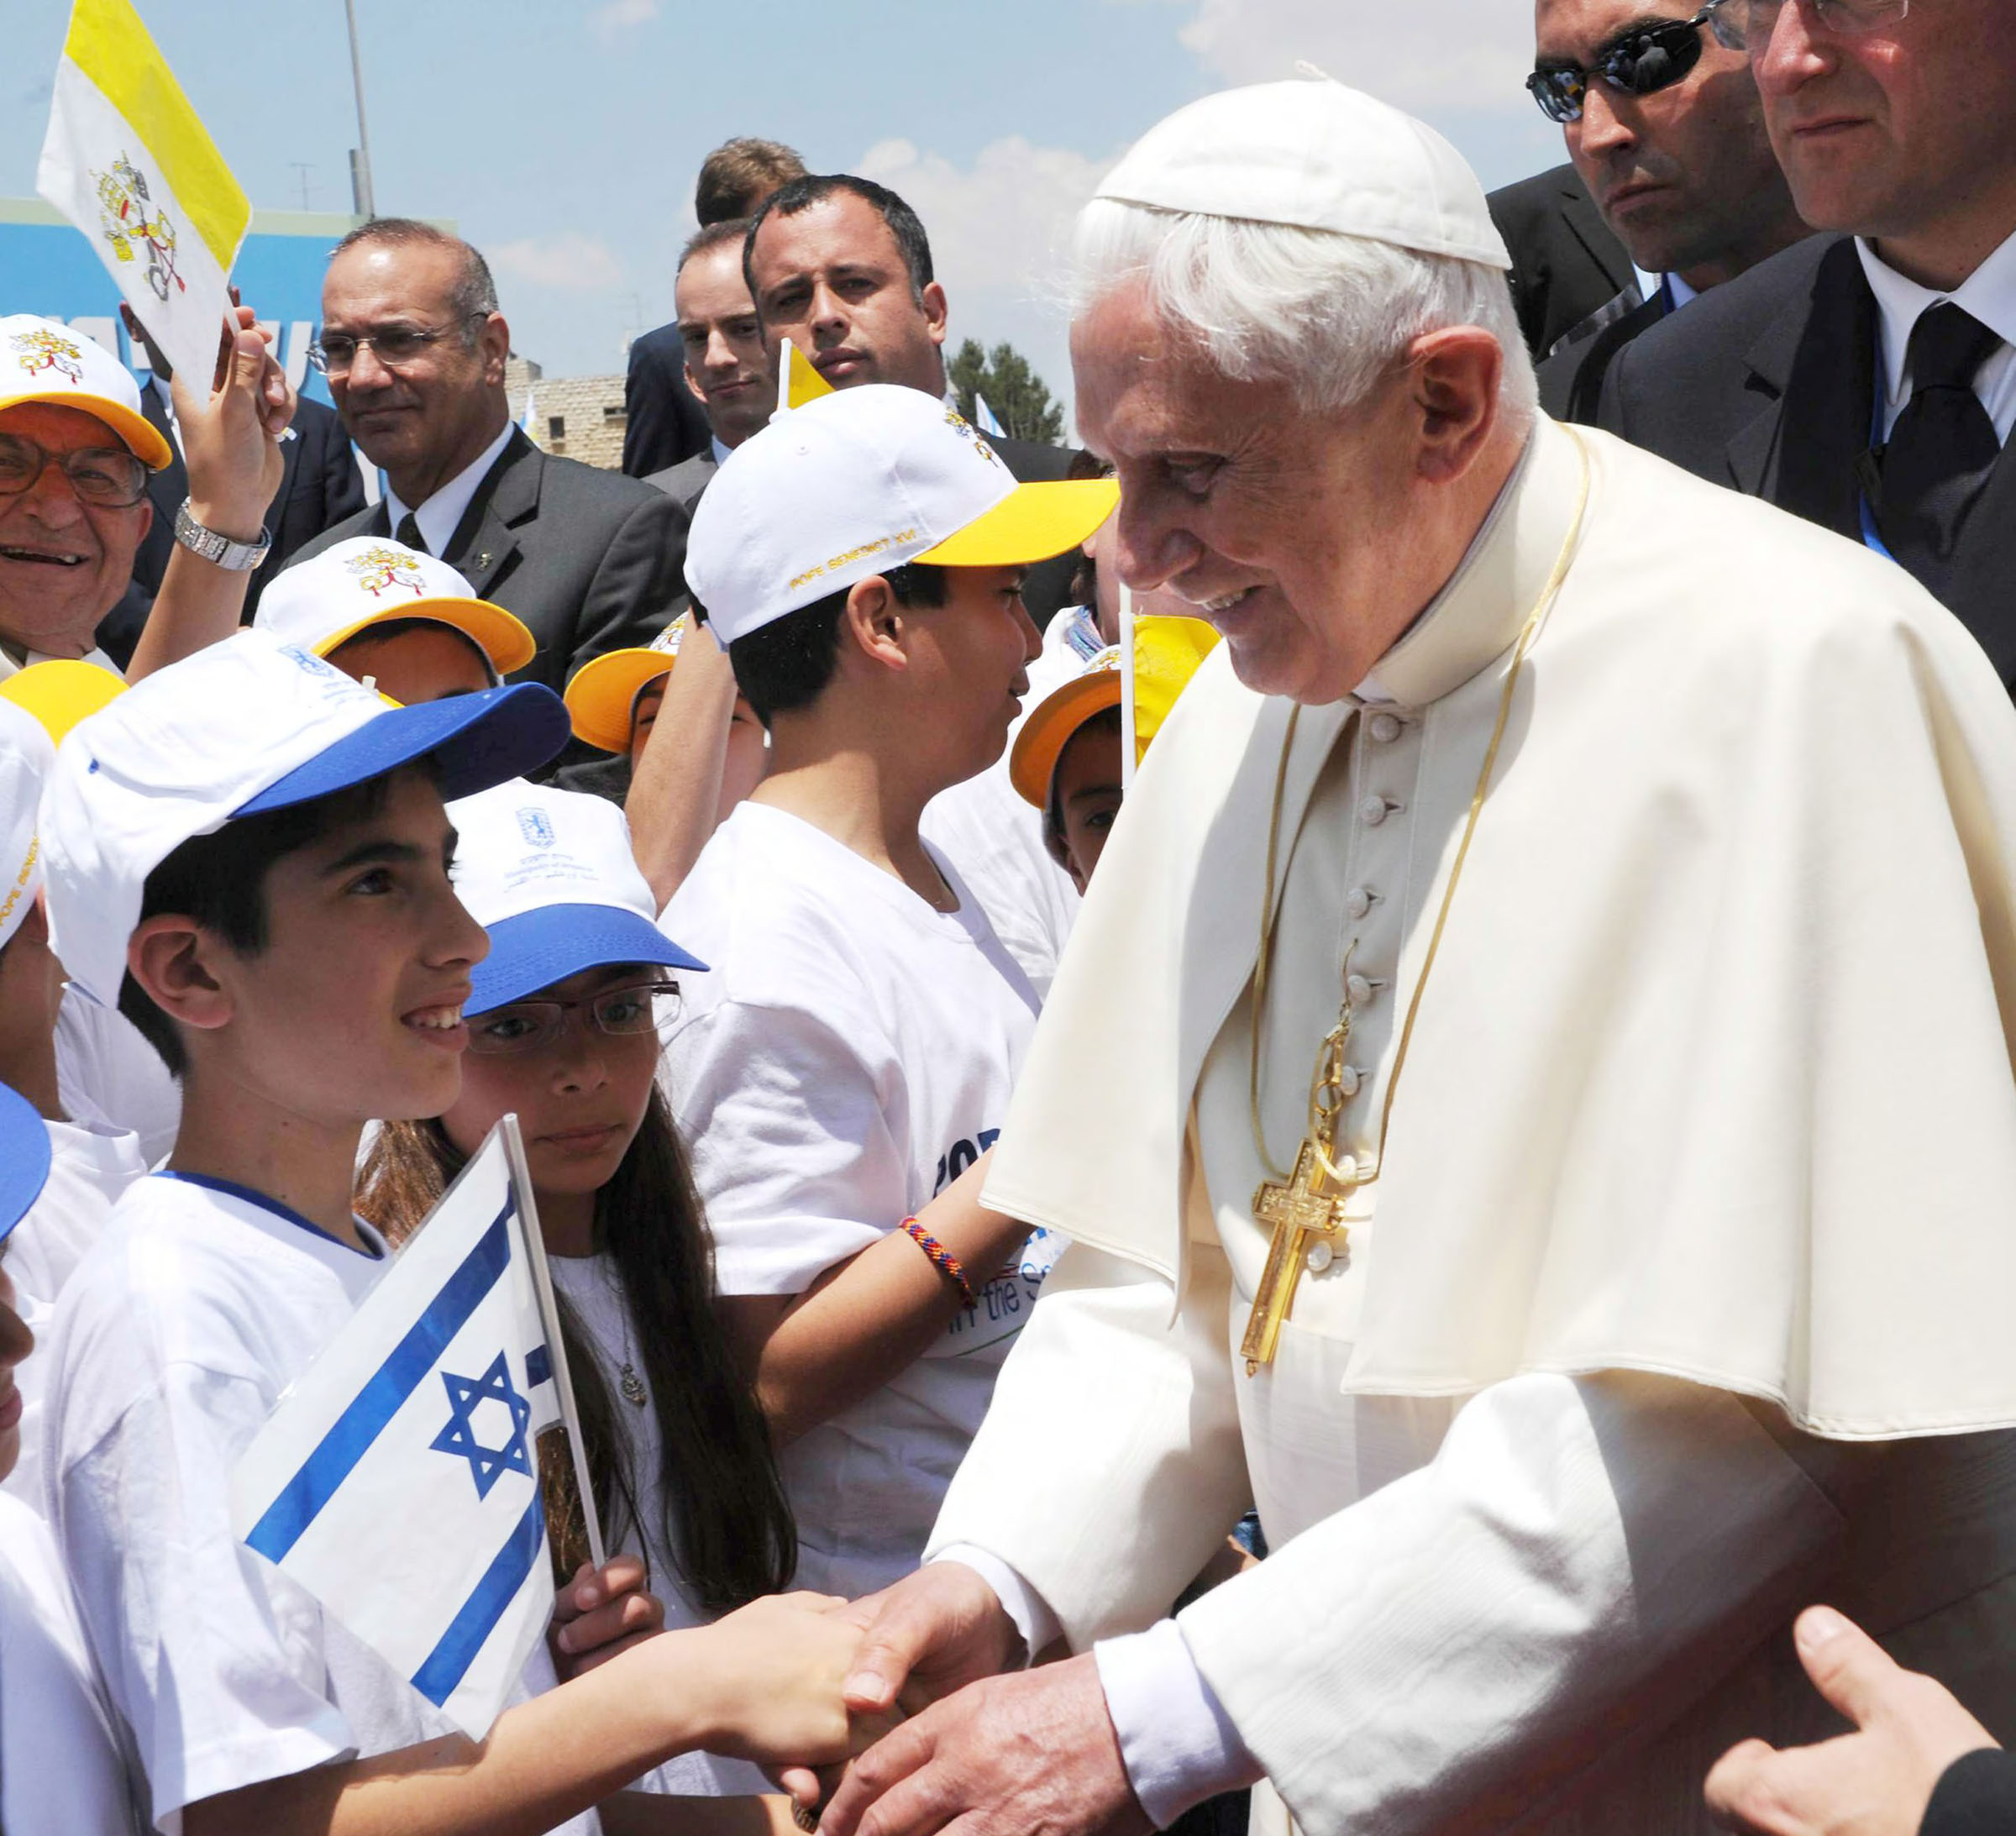 Pope Emeritus Benedict XVI greets children during a visit to Israel in 2009